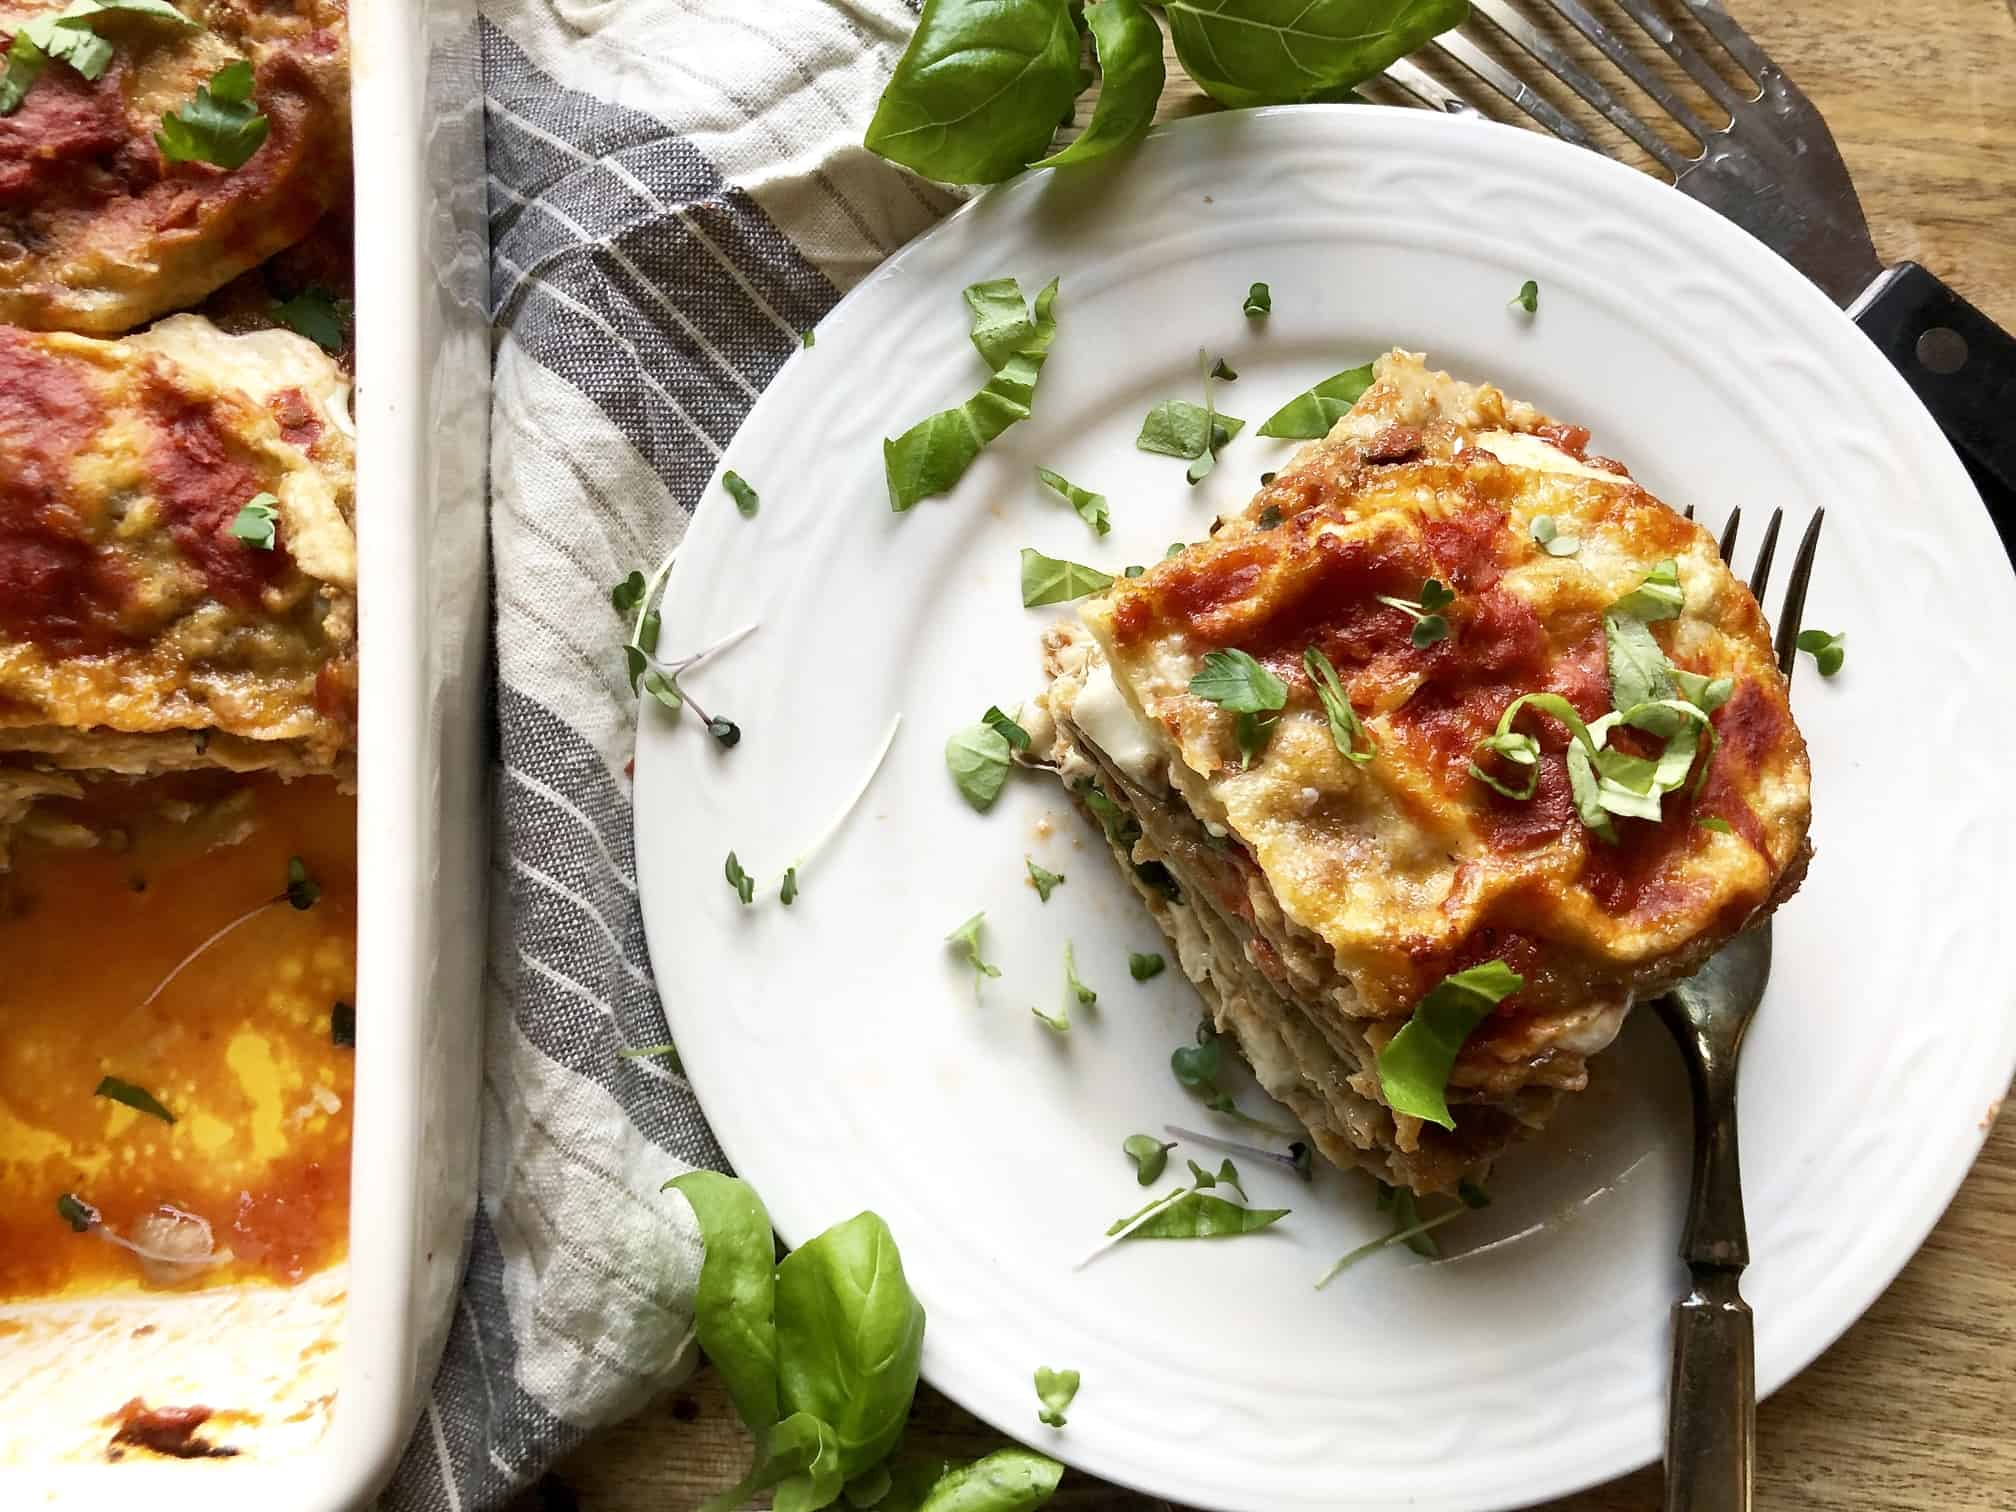 gluten-free (or-not) authentic eggplant parmesan